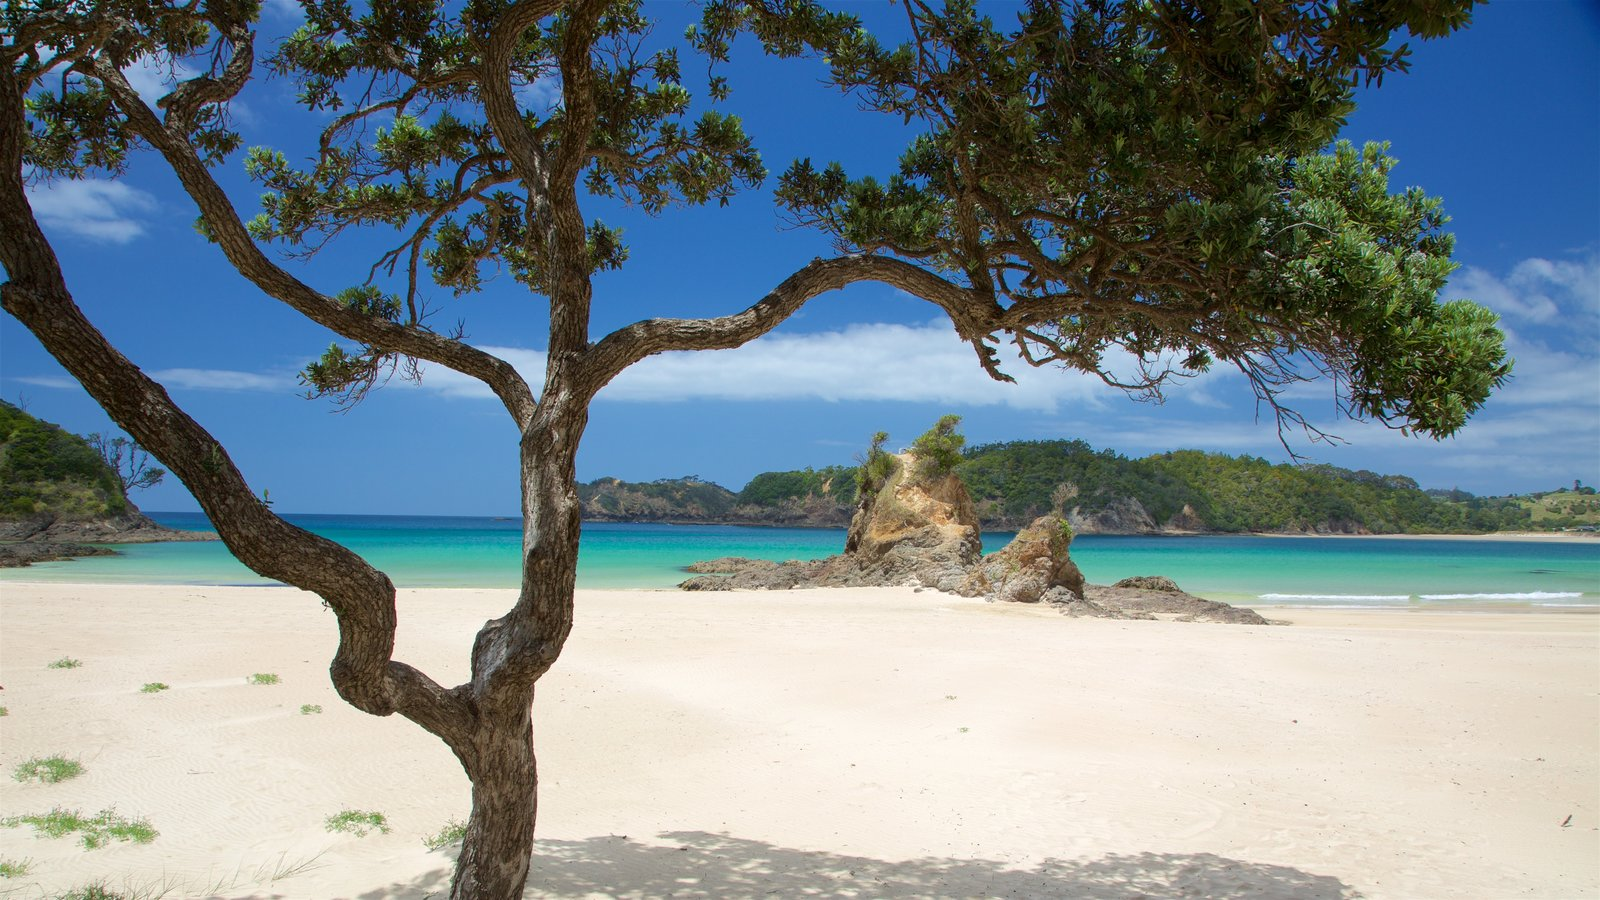 Tutukaka featuring a sandy beach, rocky coastline and a bay or harbor